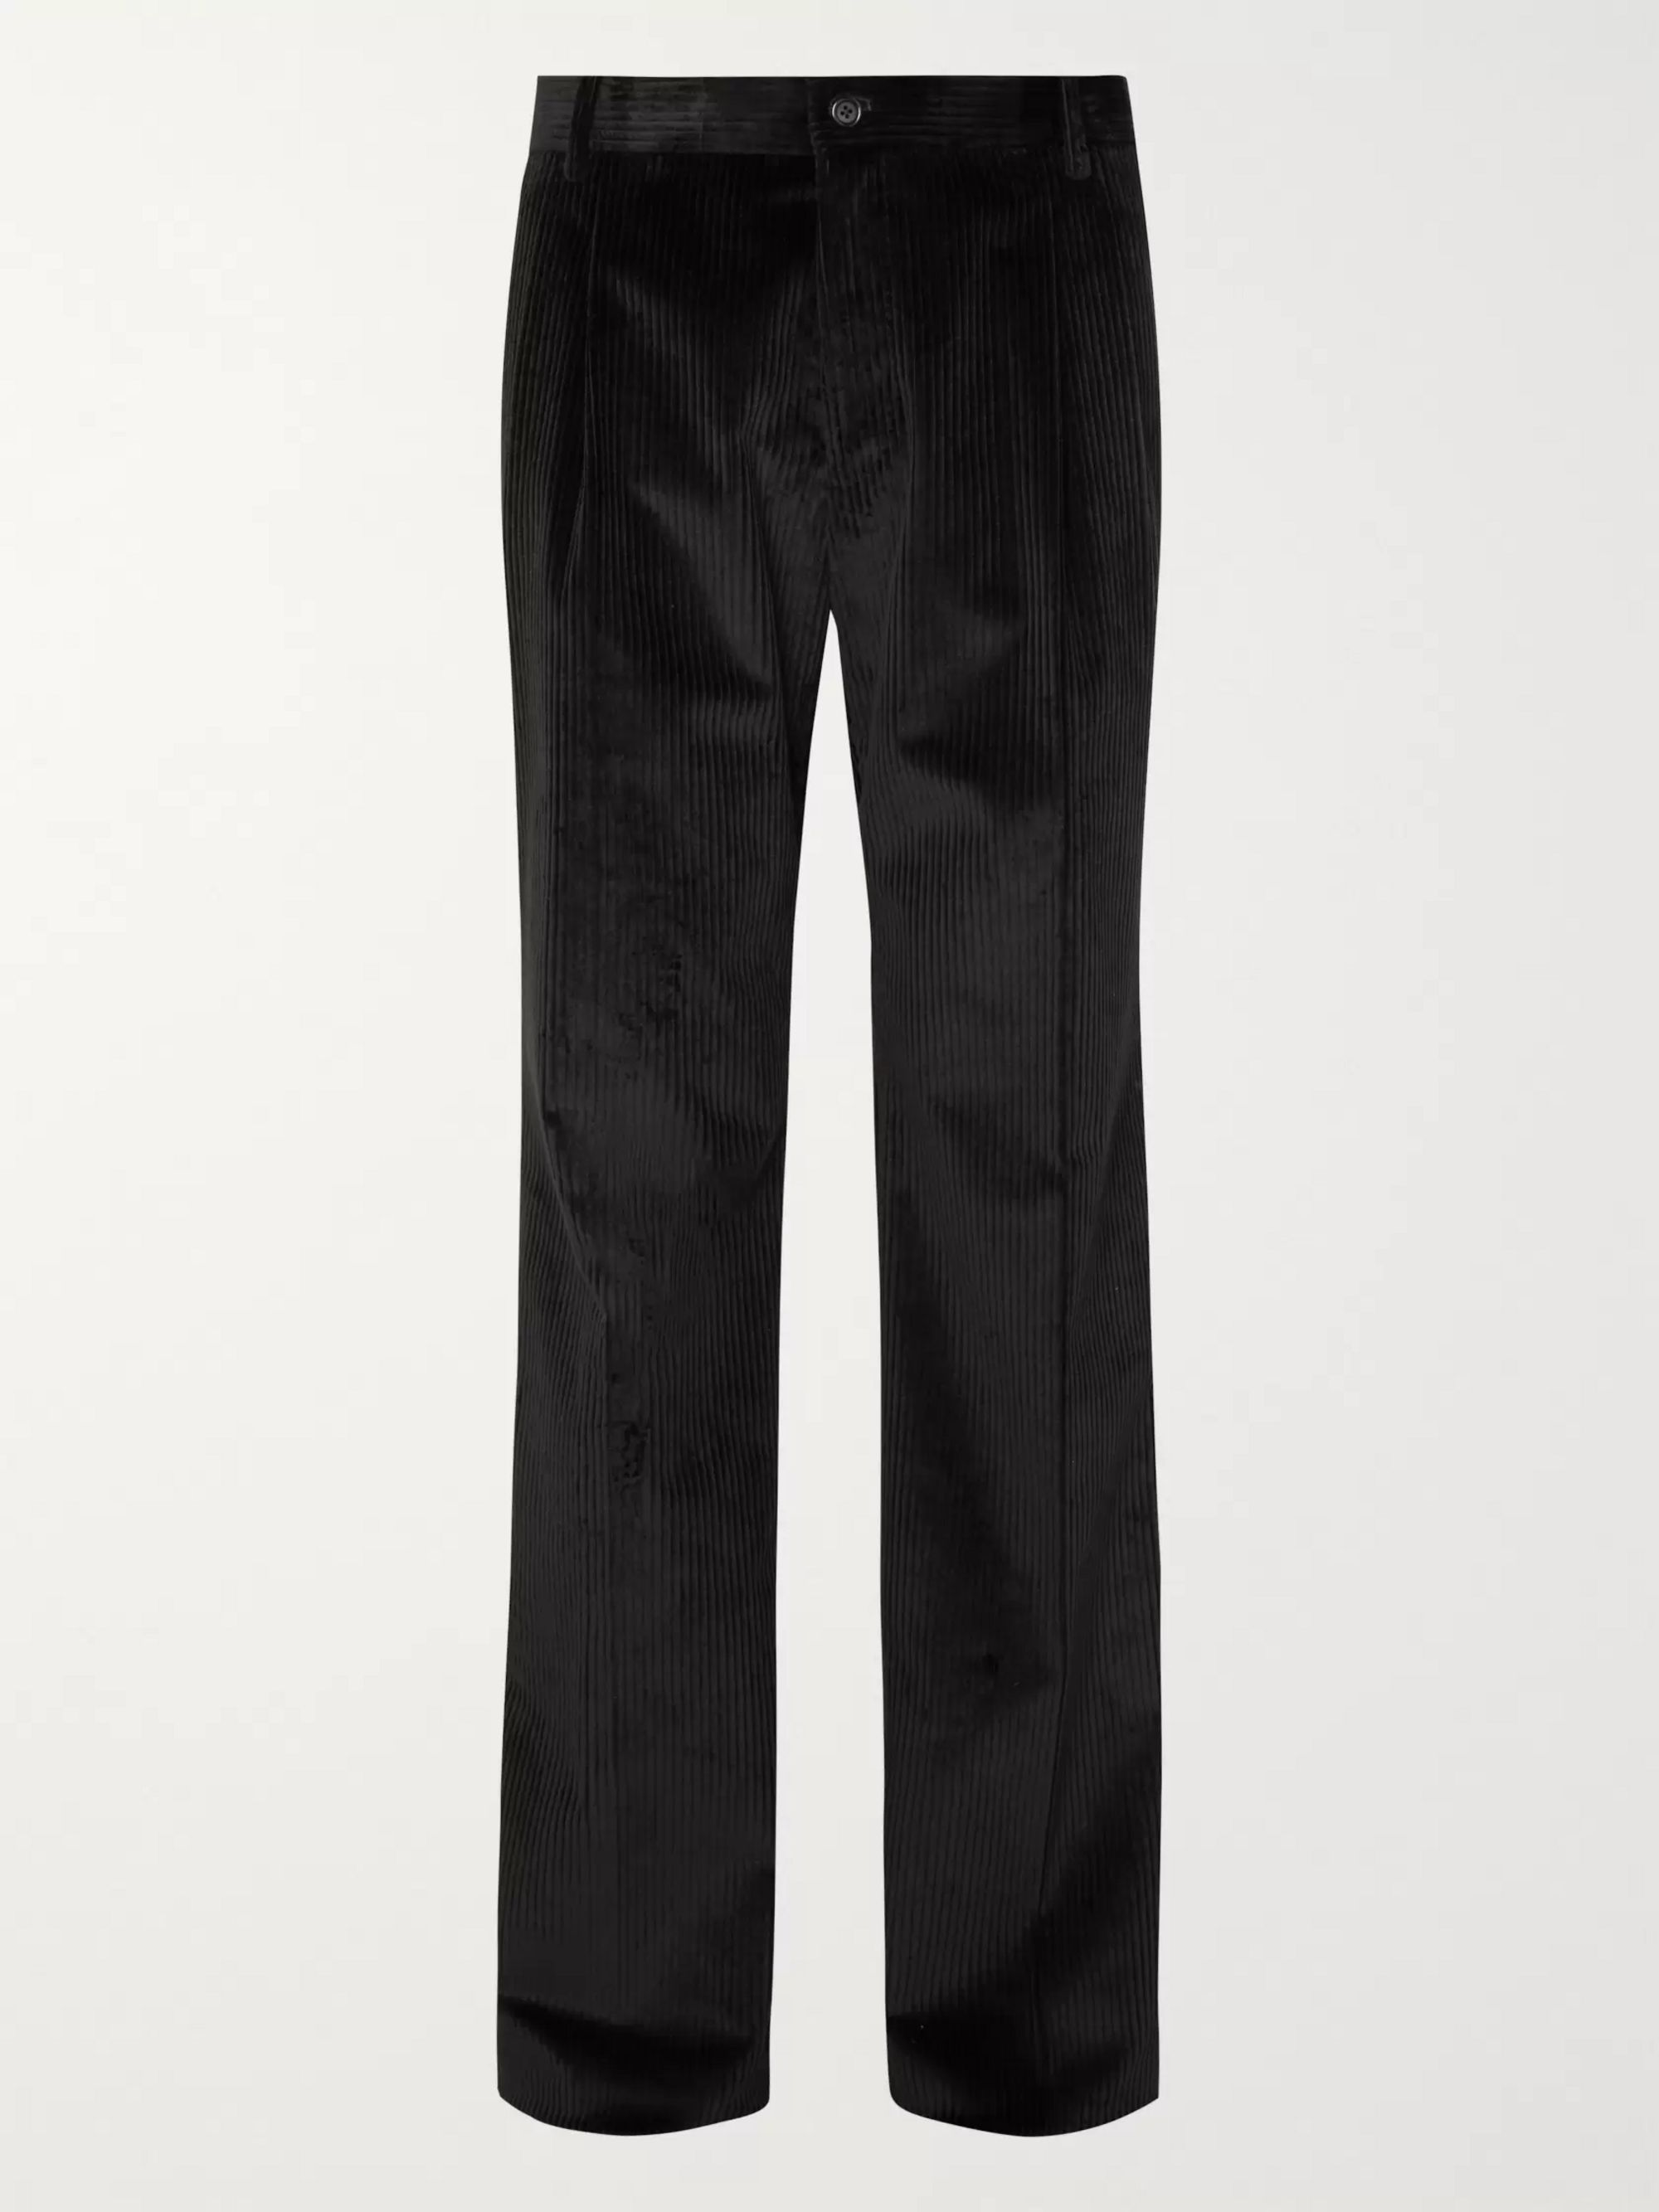 Dolce & Gabbana Black Pleated Cotton-Blend Corduroy Trousers